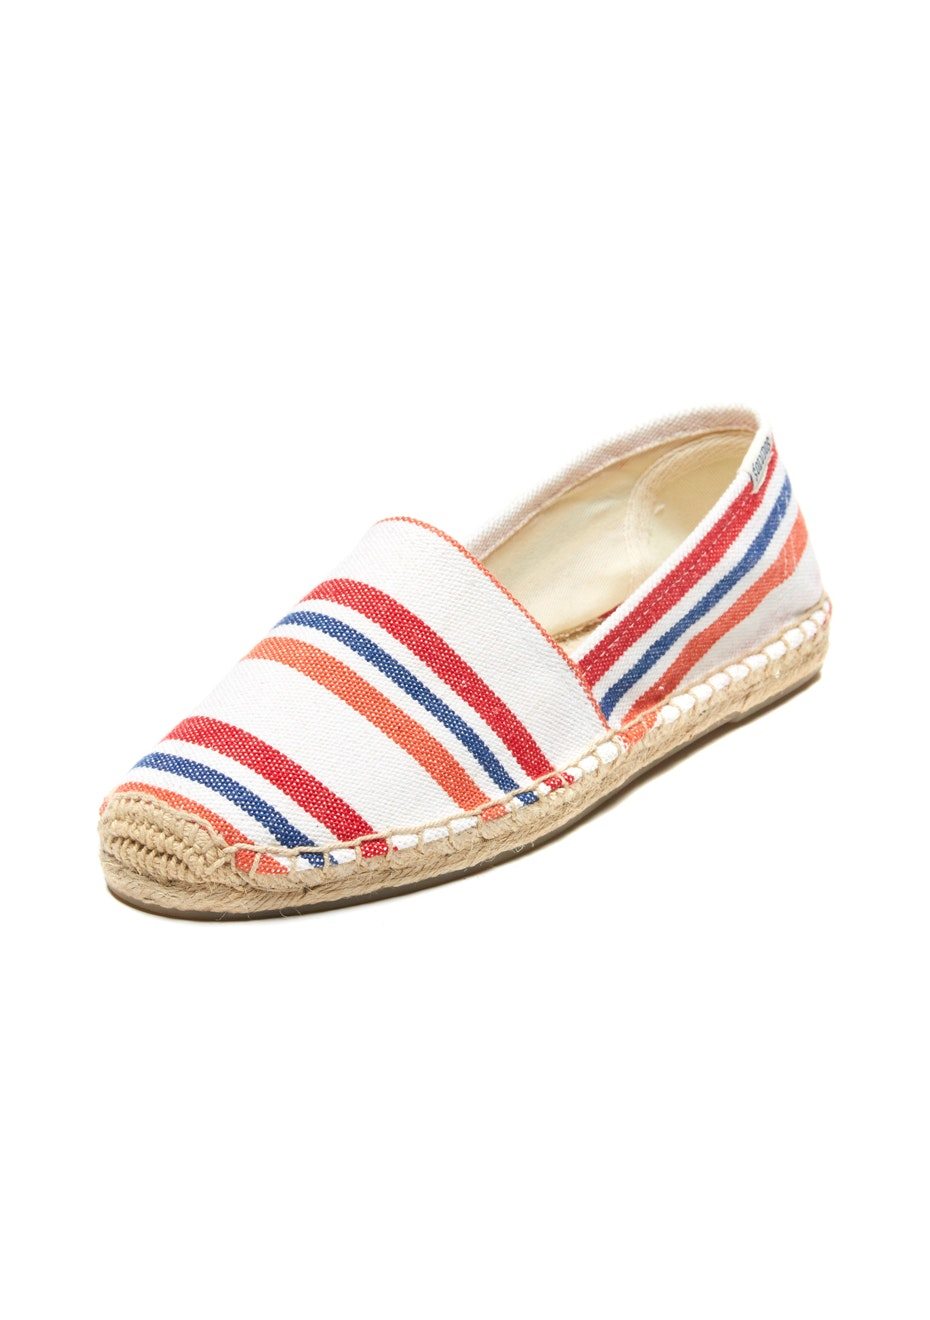 Soludos - Original Dali Striped - Red/Orange